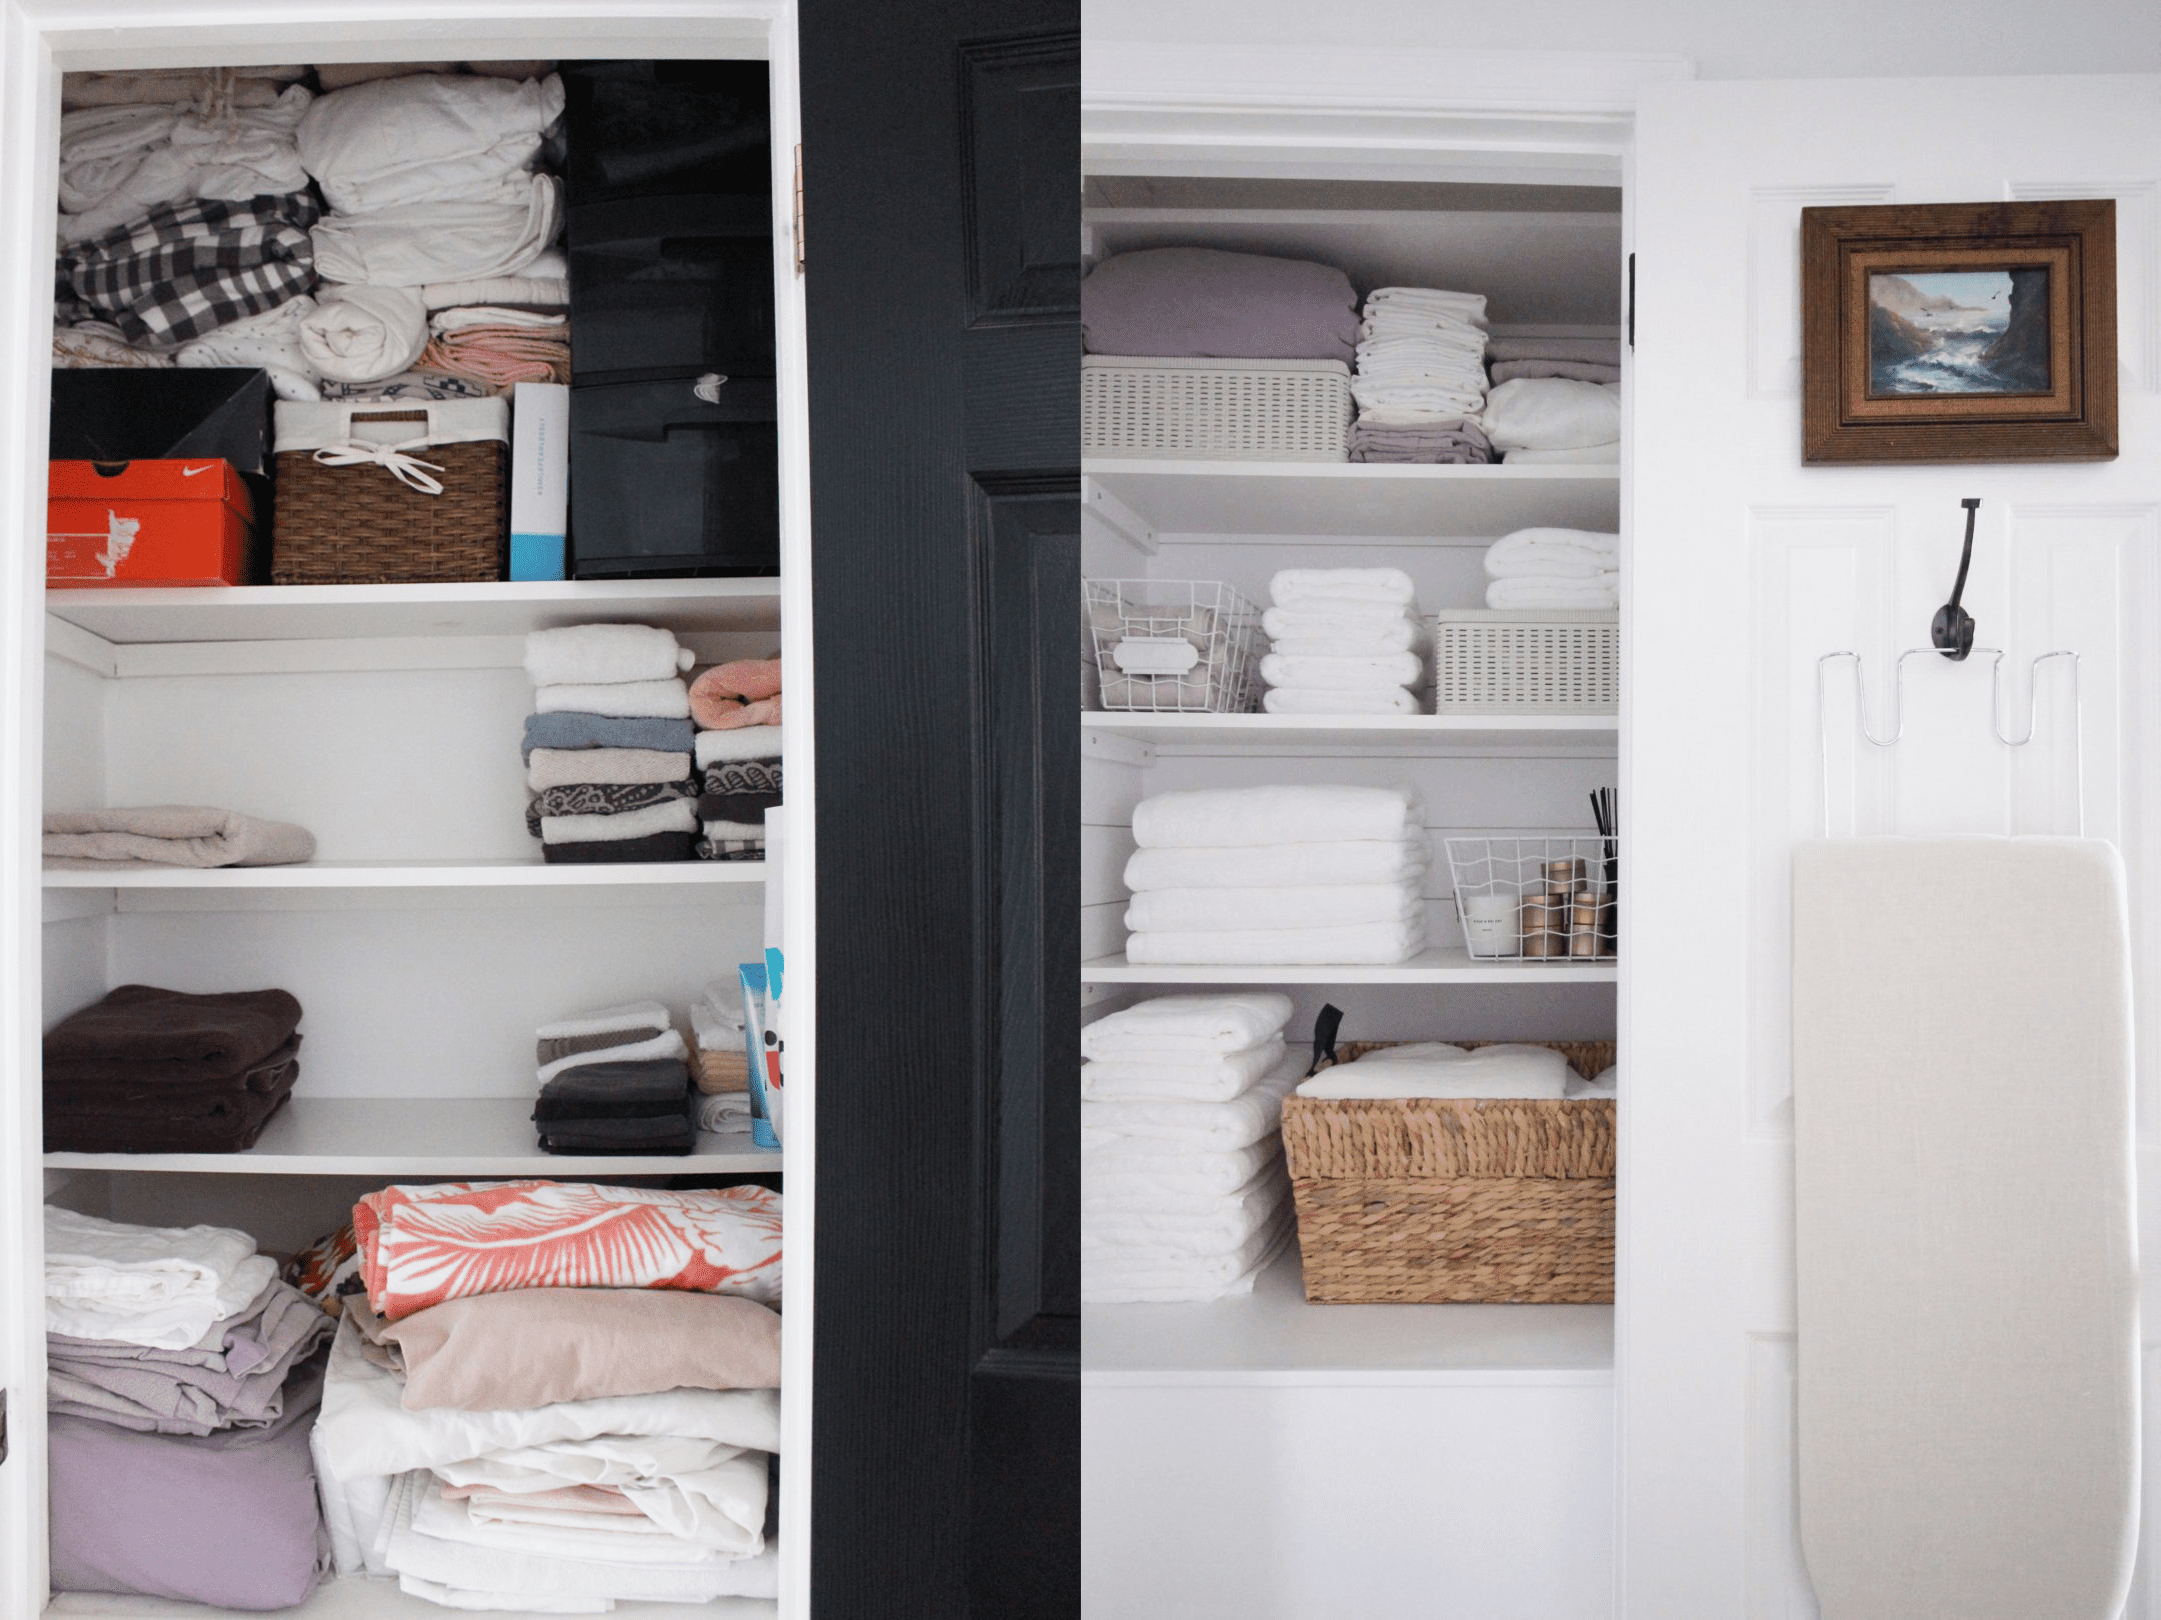 A linen closet makeover that involves streamlined linens, repainted doors, and art